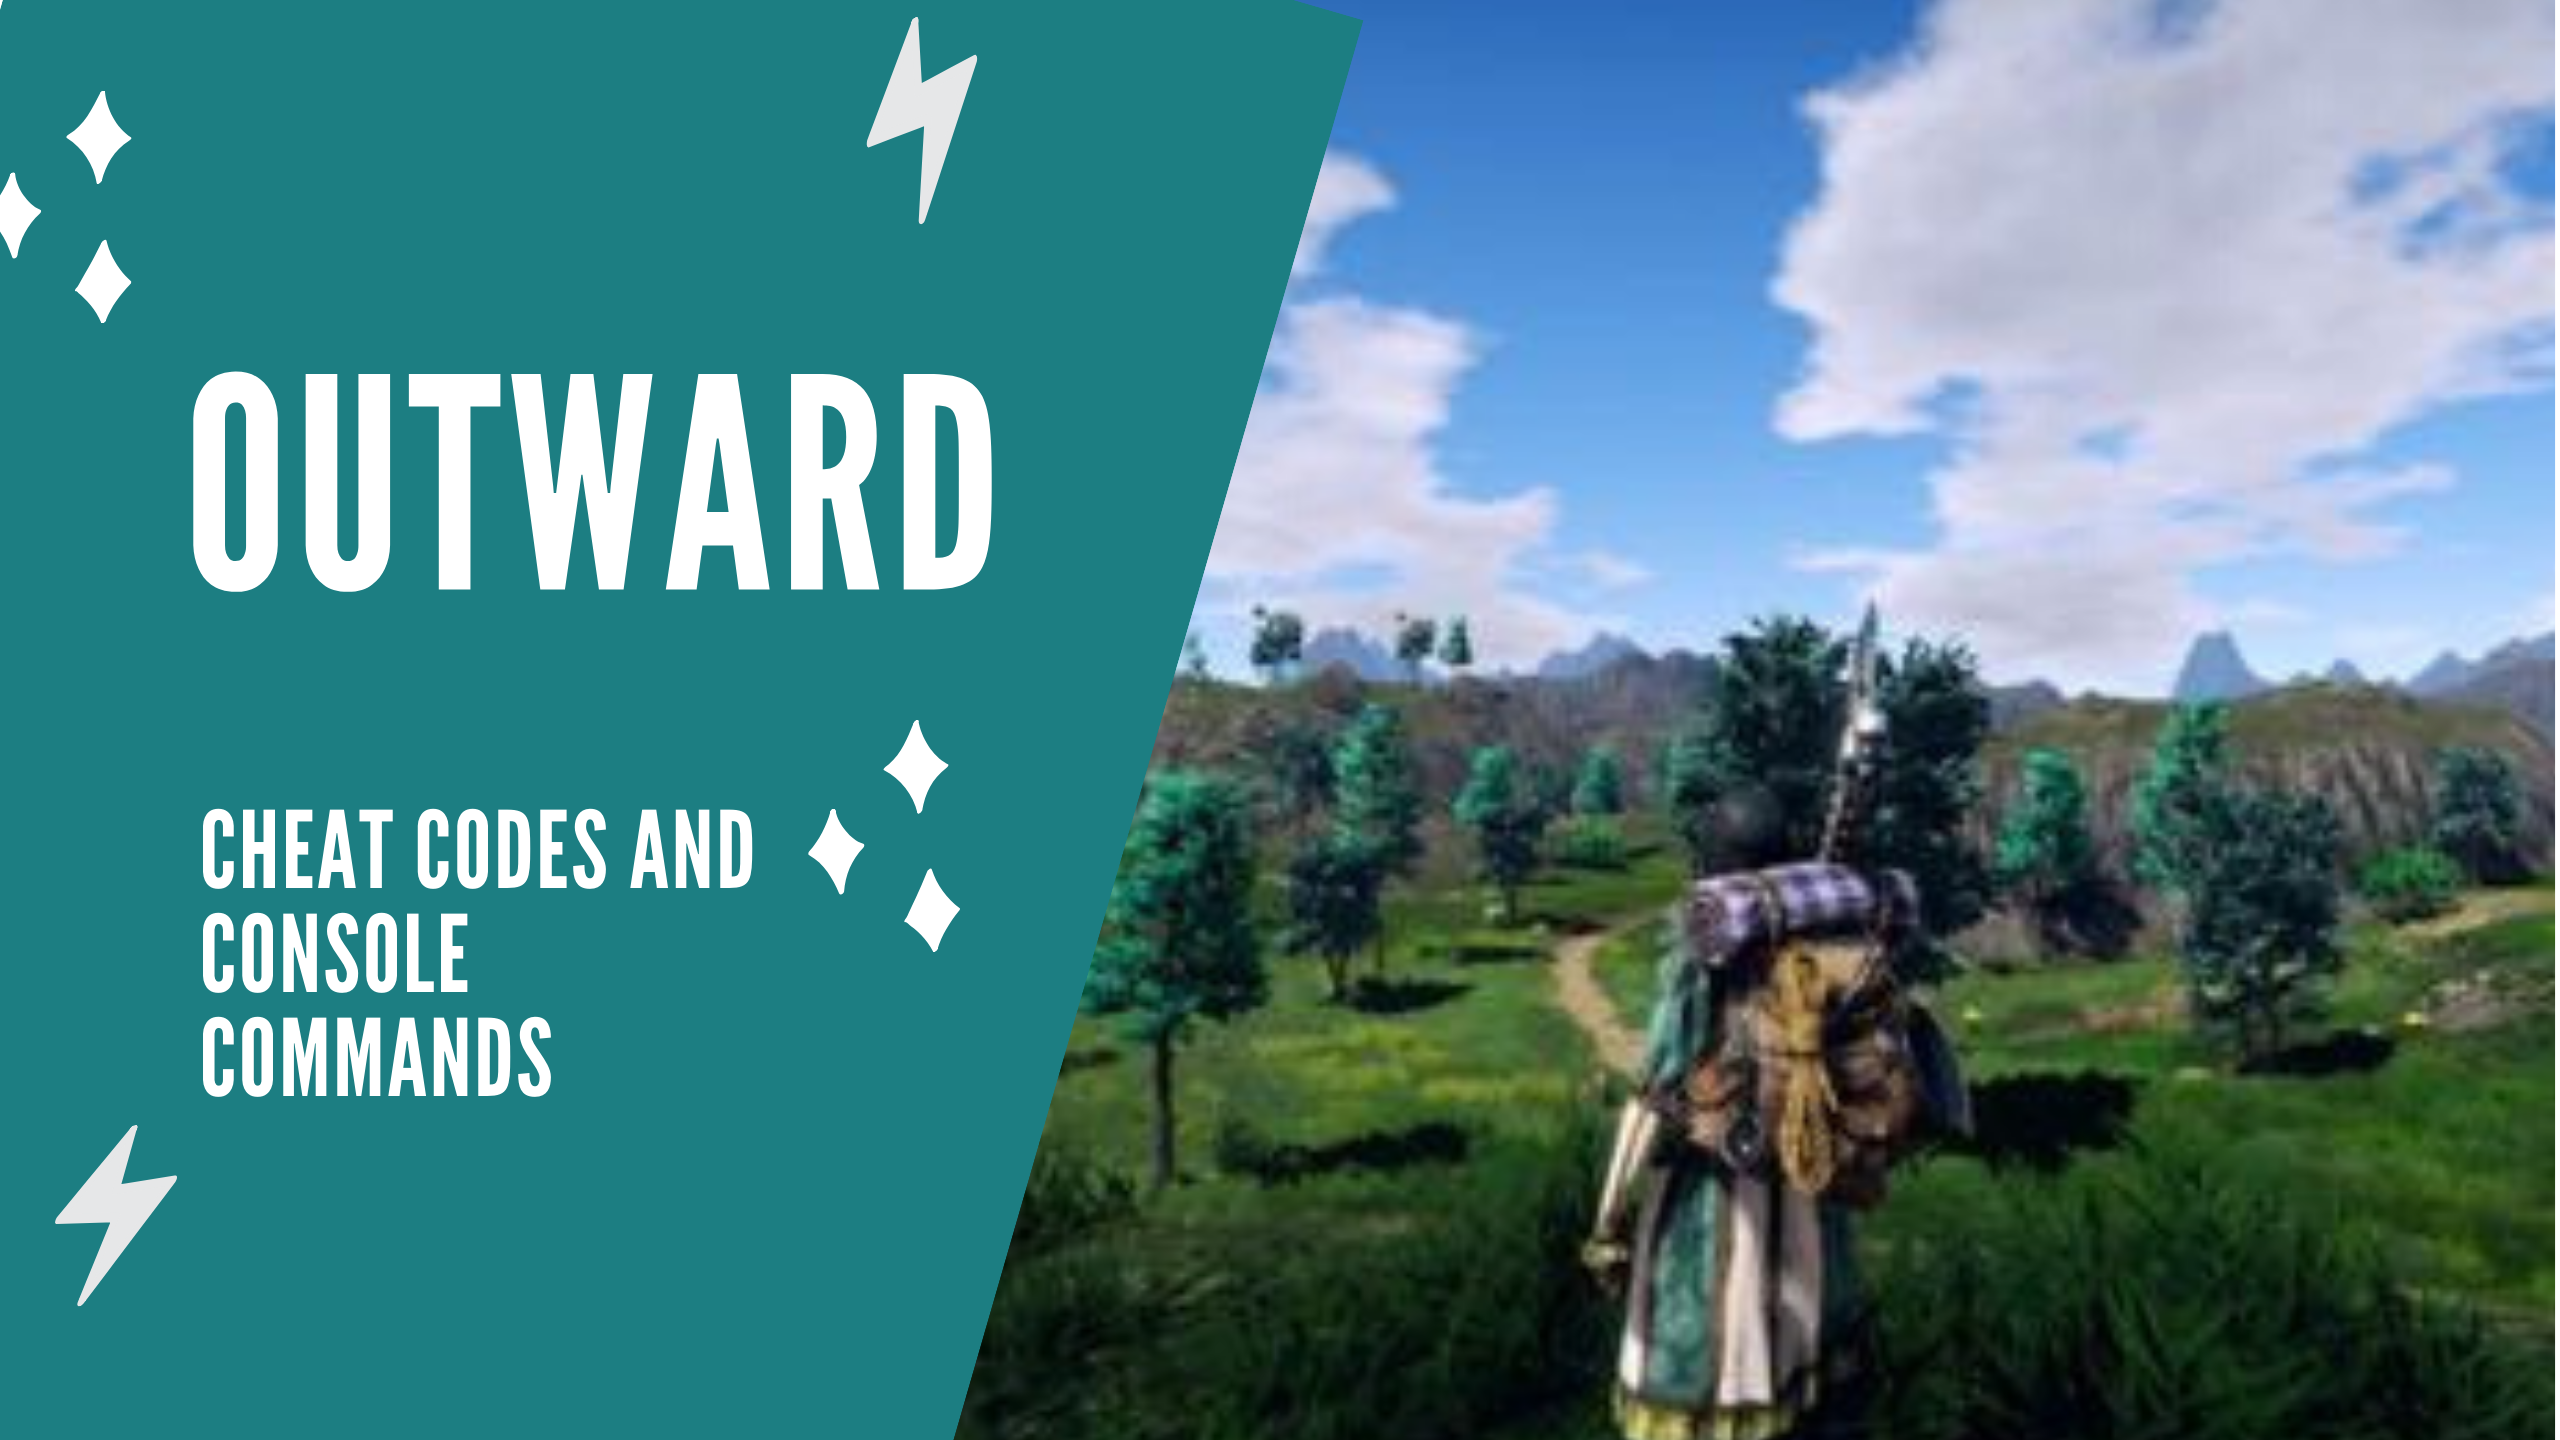 Outward cheat codes